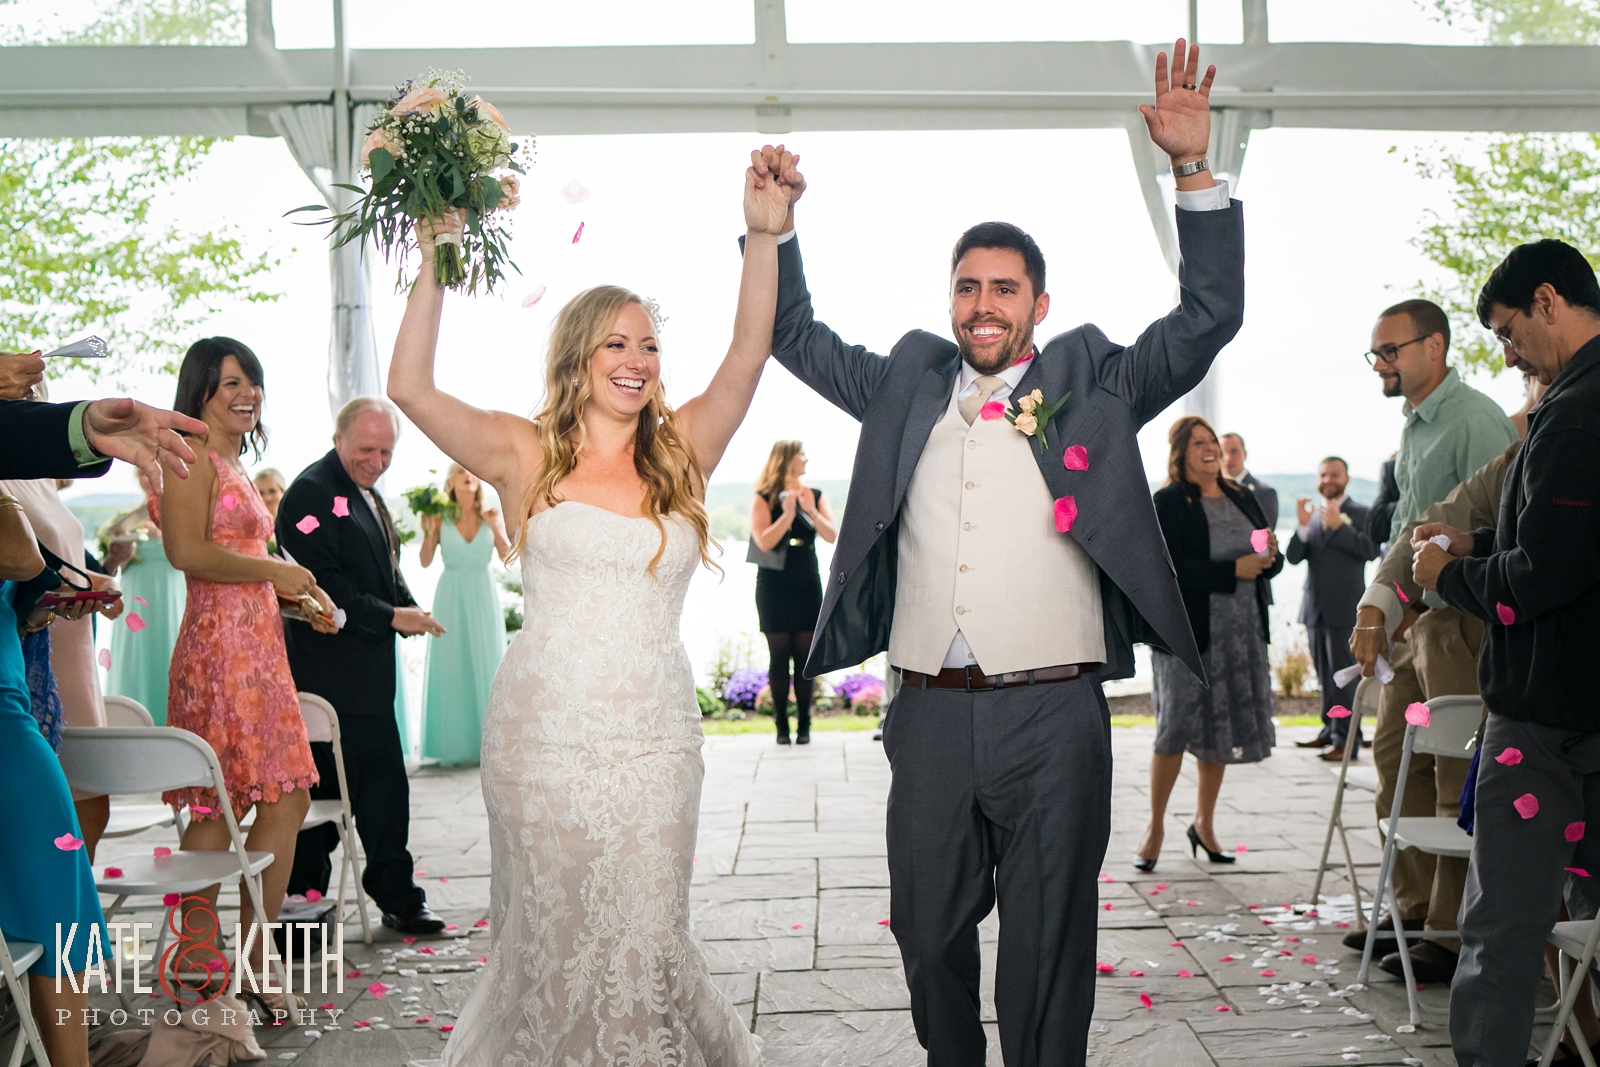 New Hampshire, Lakes Region, Lake Winnipesaukee, The Margate Resort, wedding, outdoor wedding, lakeside wedding, wedding ceremony, outdoor ceremony, tented ceremony, recessional, throwing petals, married, laughter and applause, wedding moments